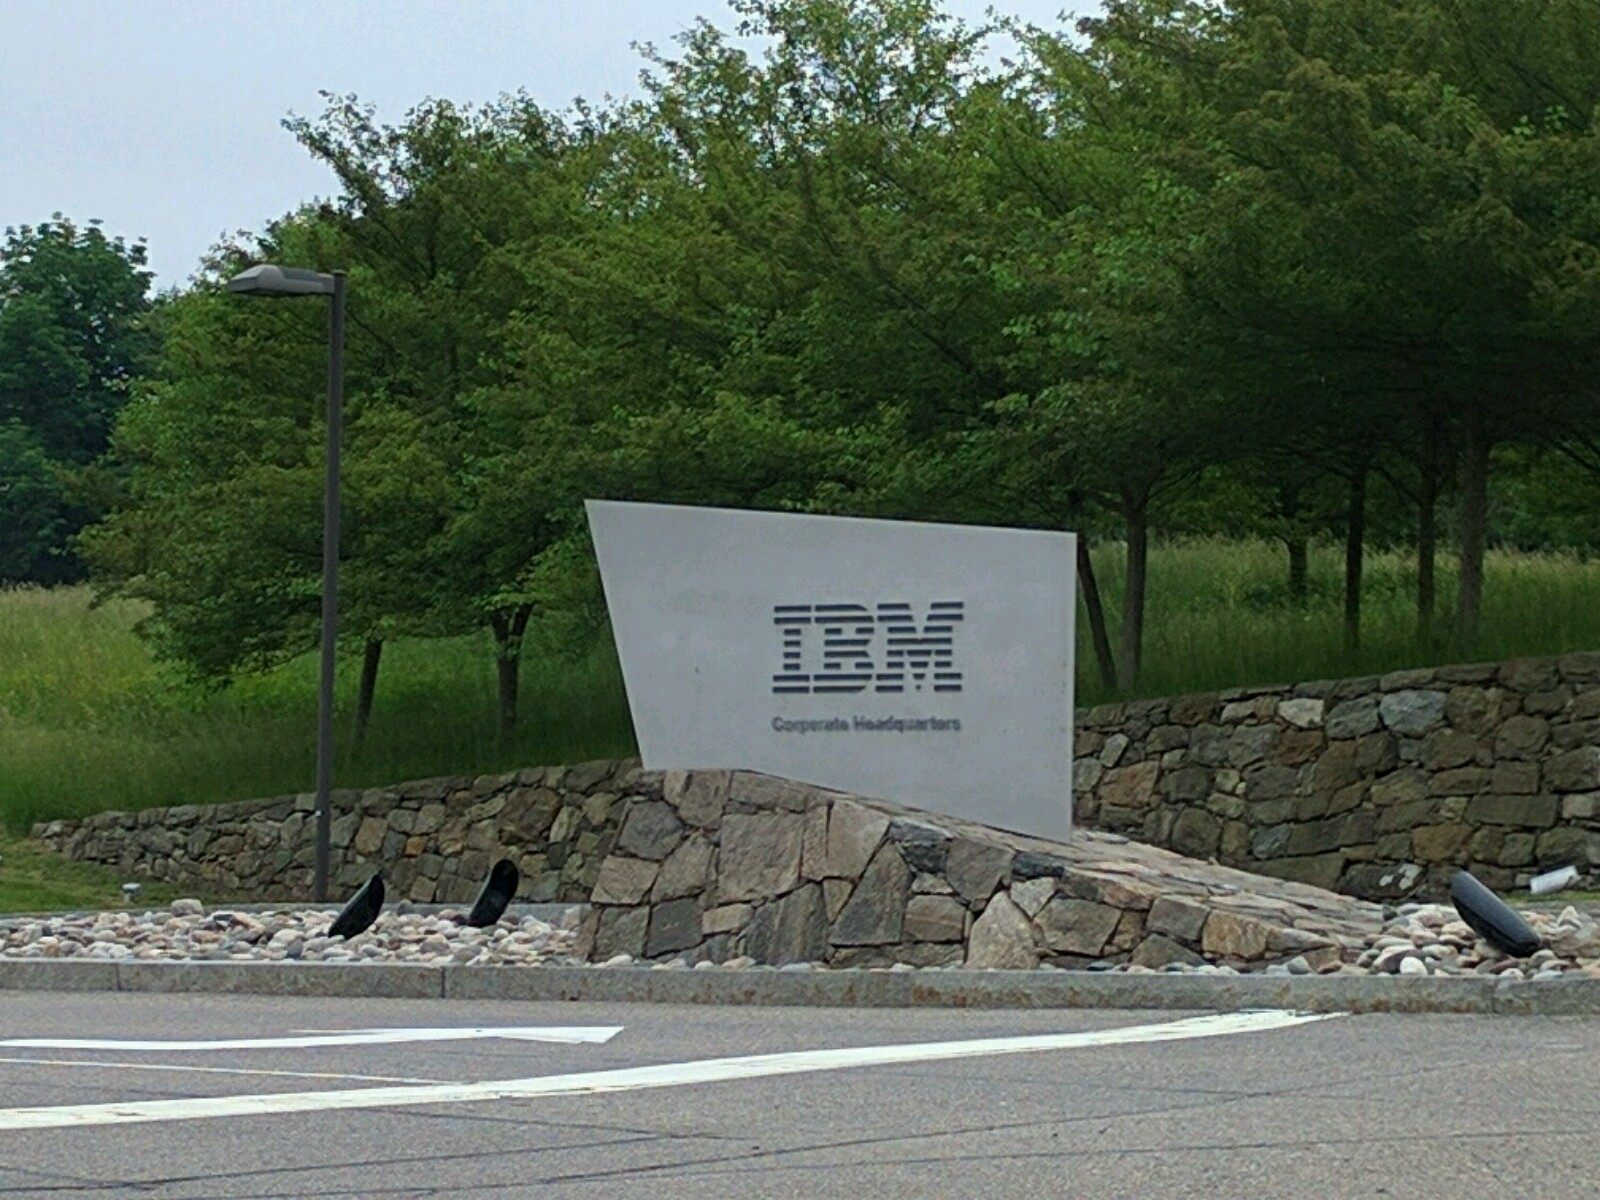 Entrance to IBM's corporate headquarters in Armonk, New York.